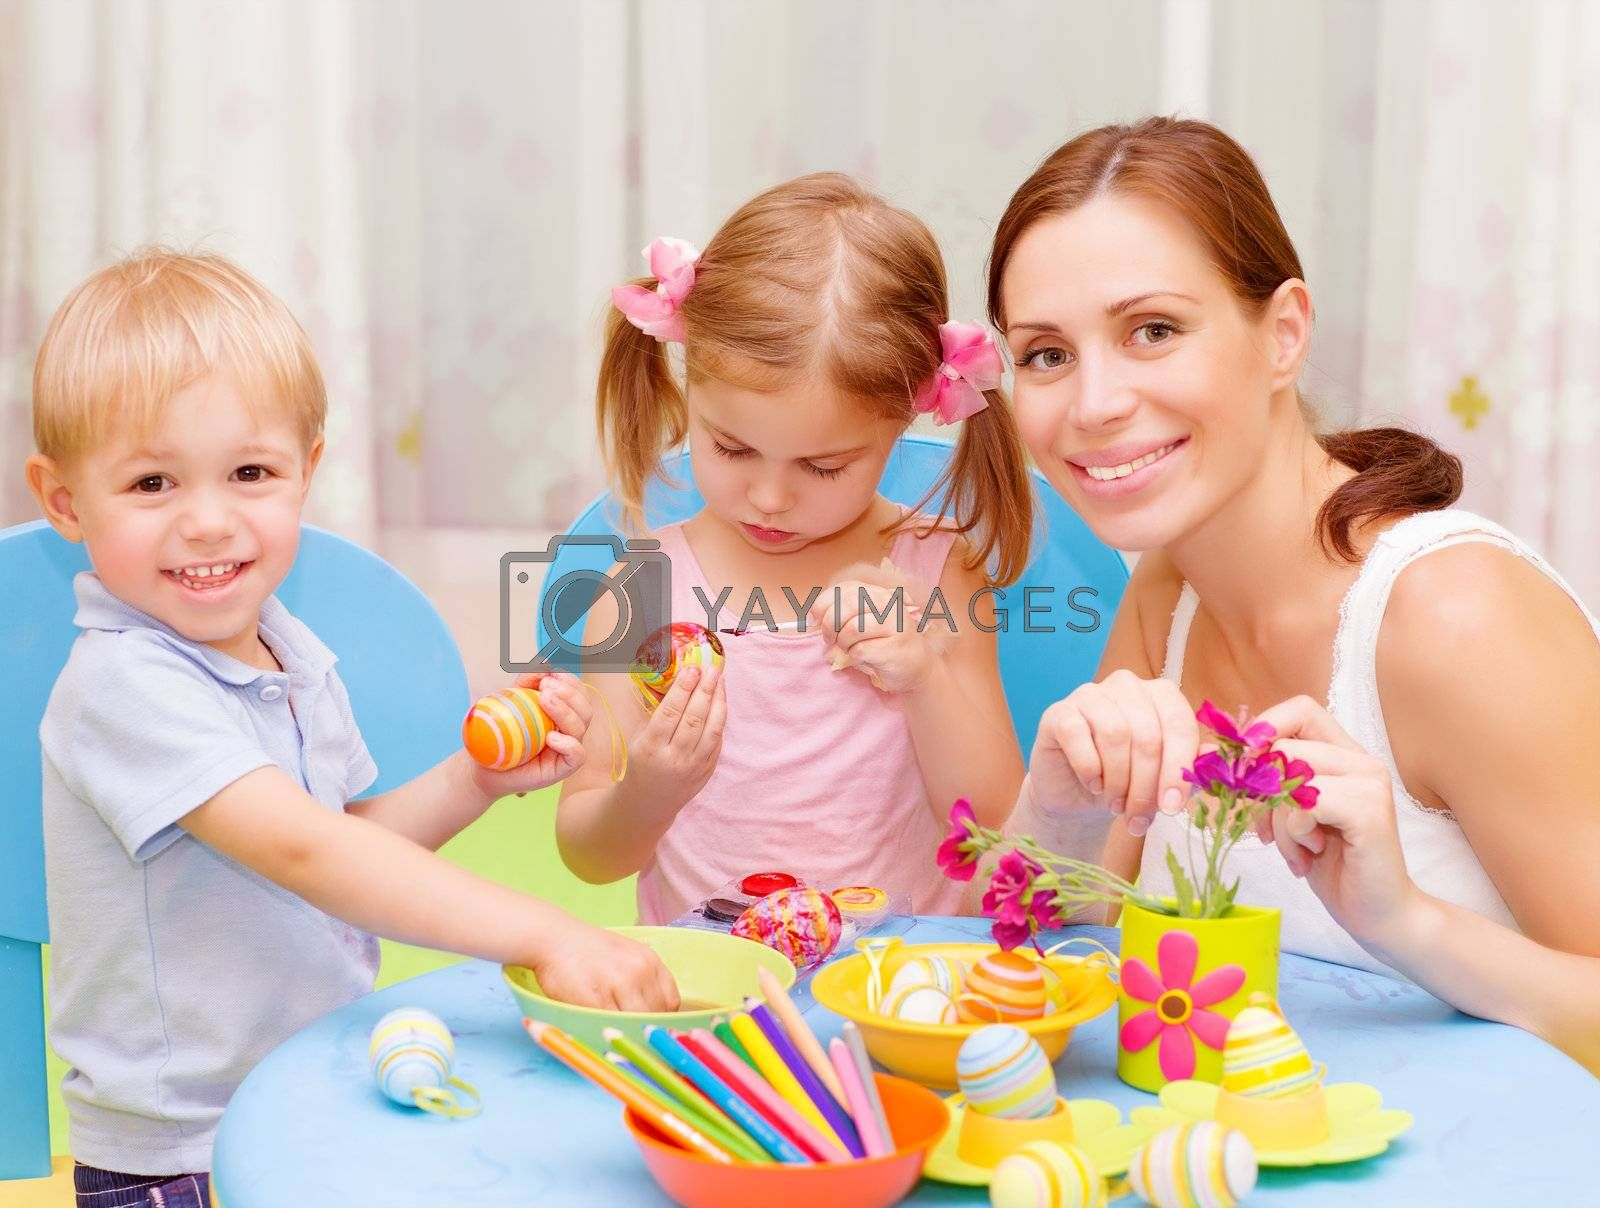 Two sweet toddler with young drawing teacher paint colorful Easter eggs, art lesson, handmade festive decor